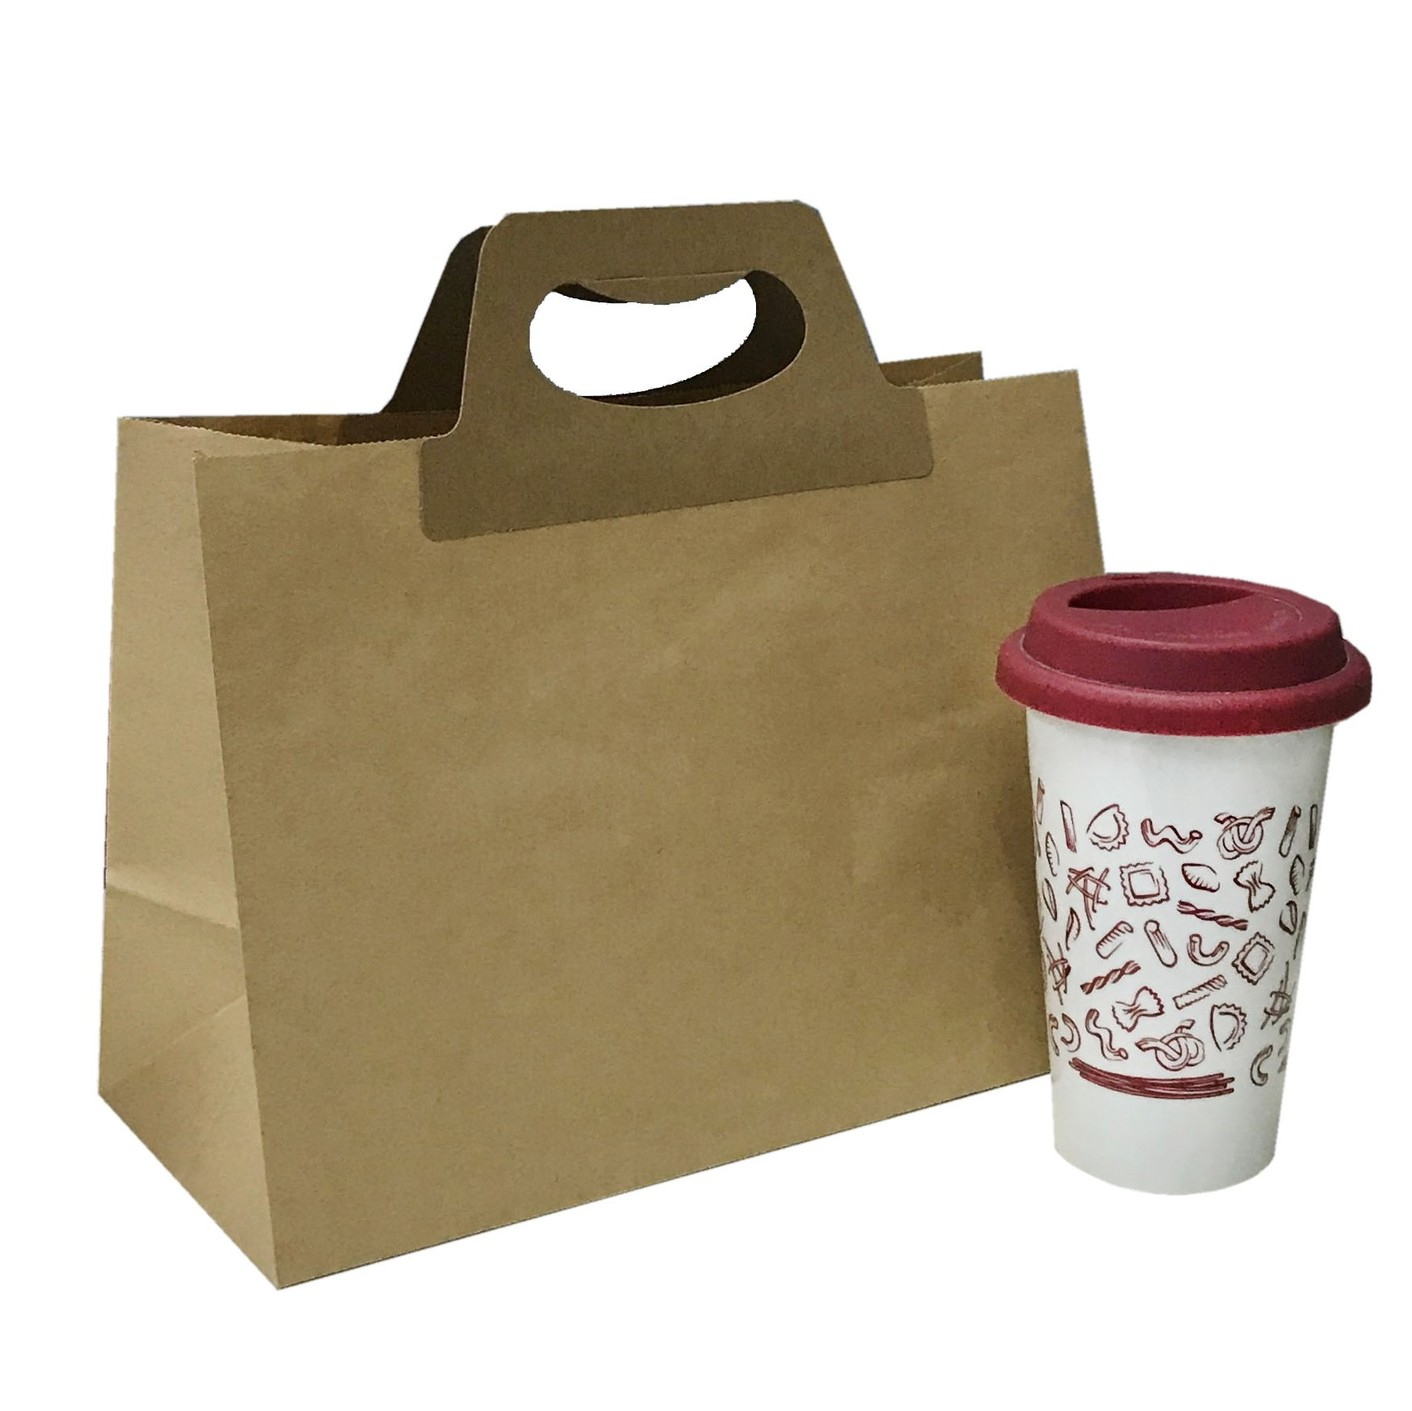 SALE: PATENT DIE-CUT HANDLE PAPER BAGS (WITH BASE CARD)